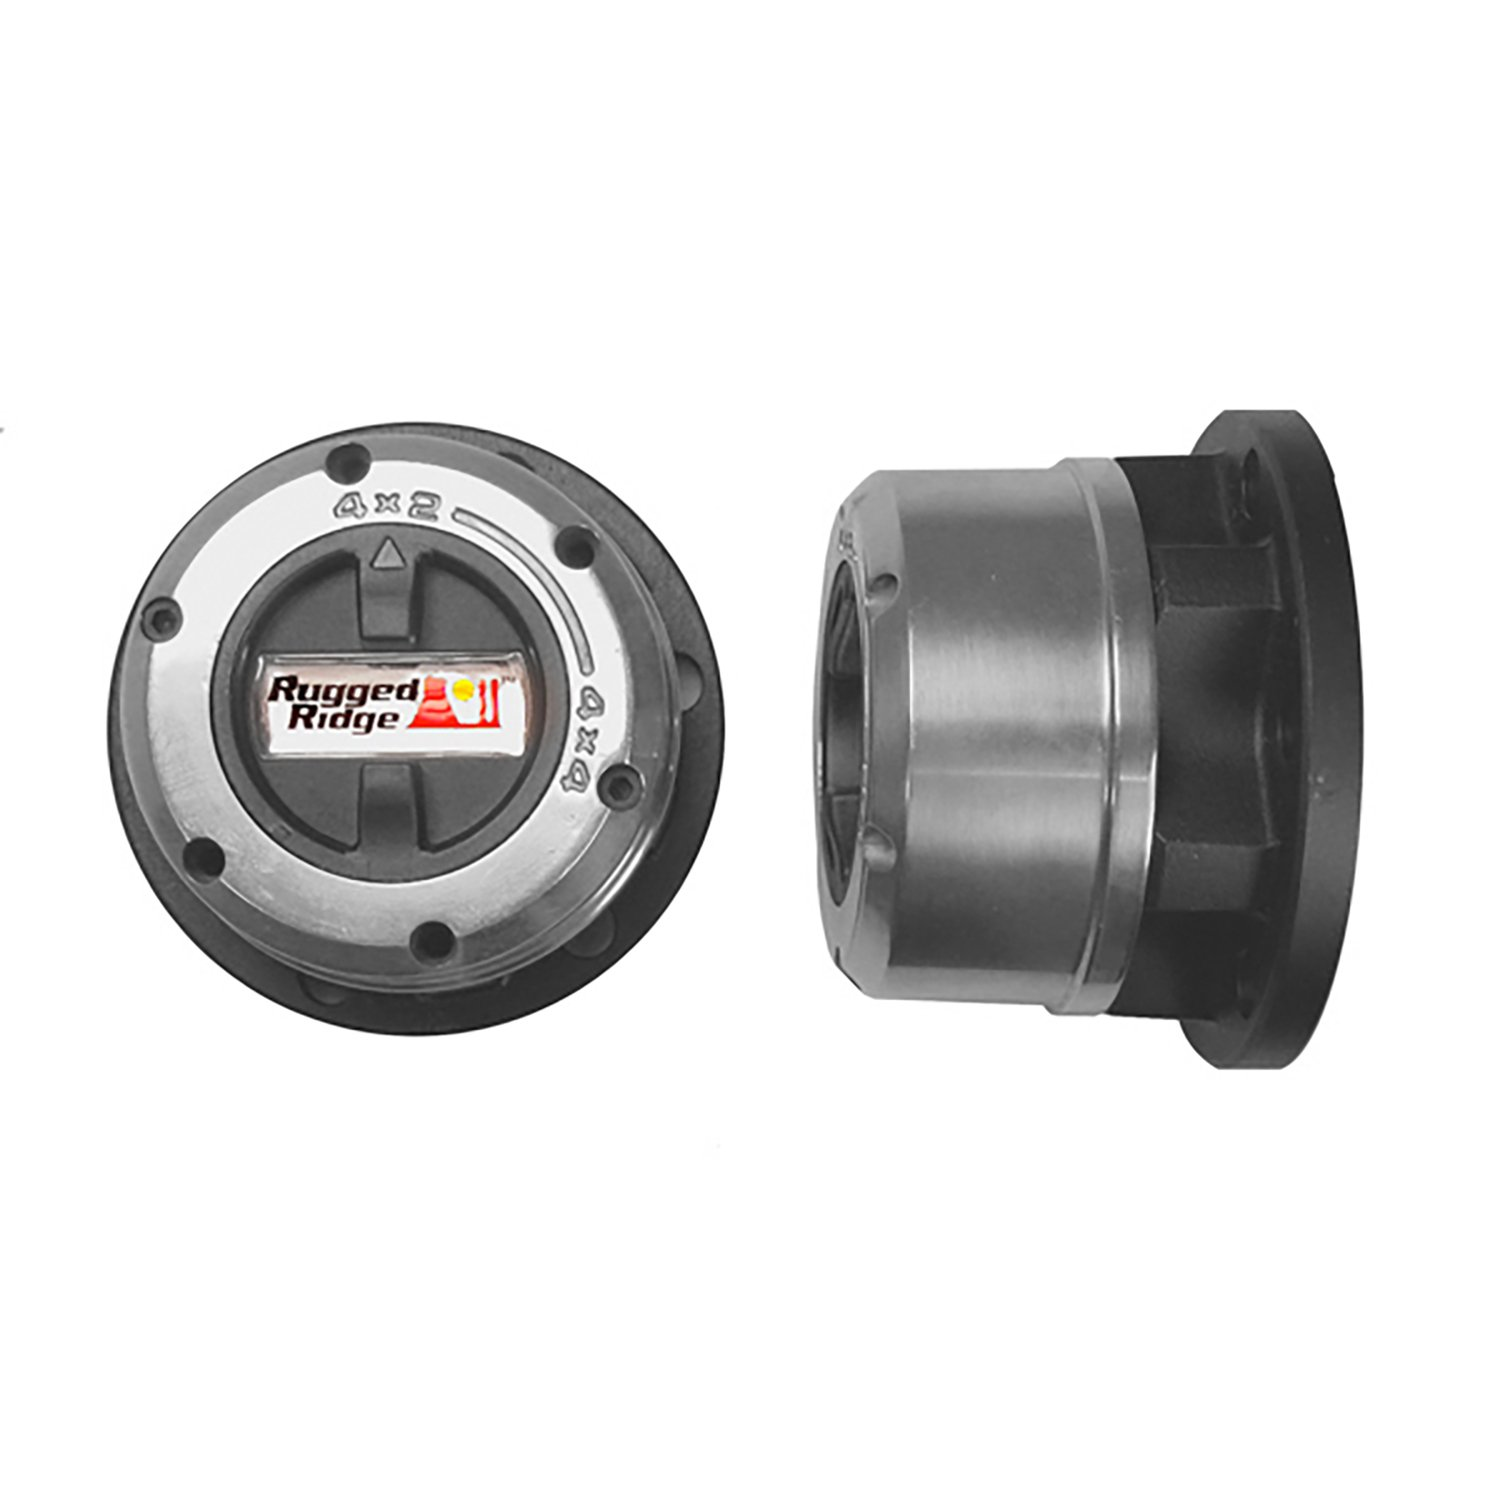 Amazon.com: Rugged Ridge 15001.39 30 Spline Internal Mount Manual Locking  Hub: Automotive